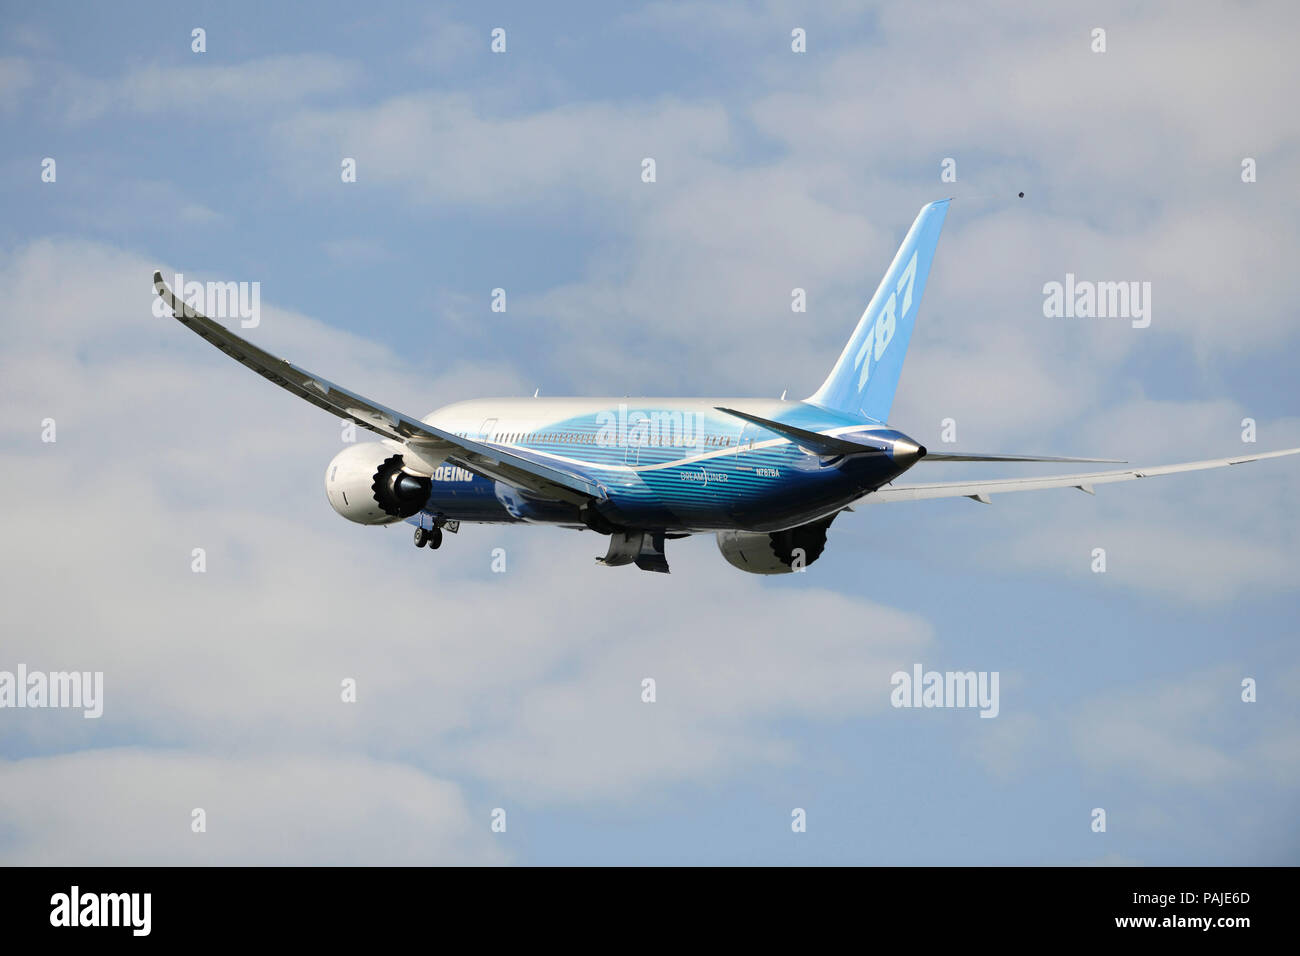 the first Boeing 787-8 Dreamliner prototype taking-off with undercarriage retracting Stock Photo